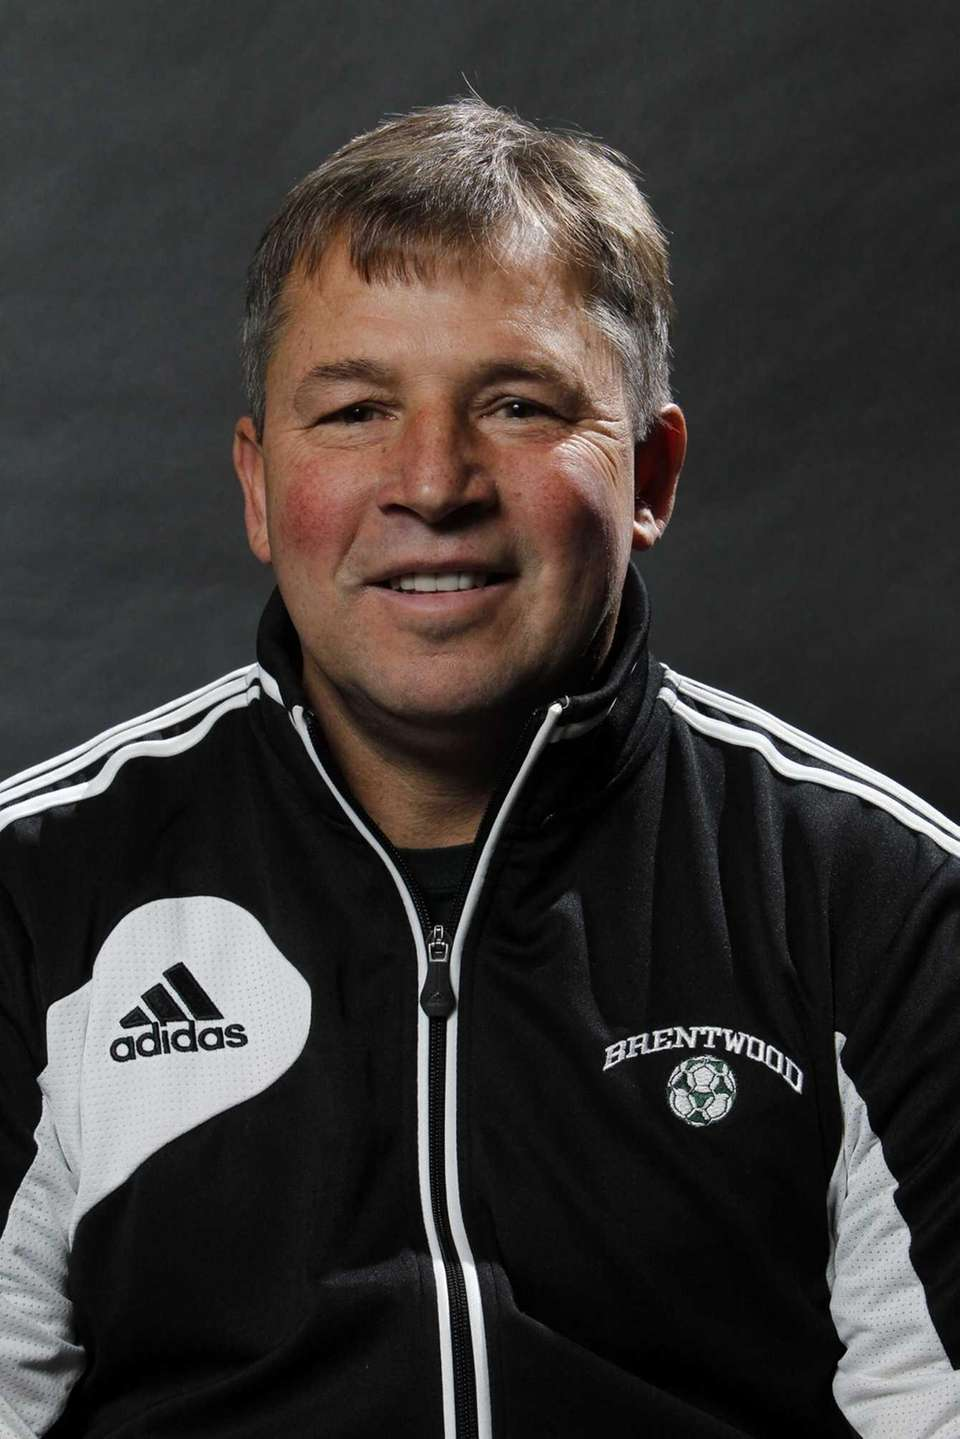 RON EDEN, SUFFOLK COACH OF THE YEAR Brentwood